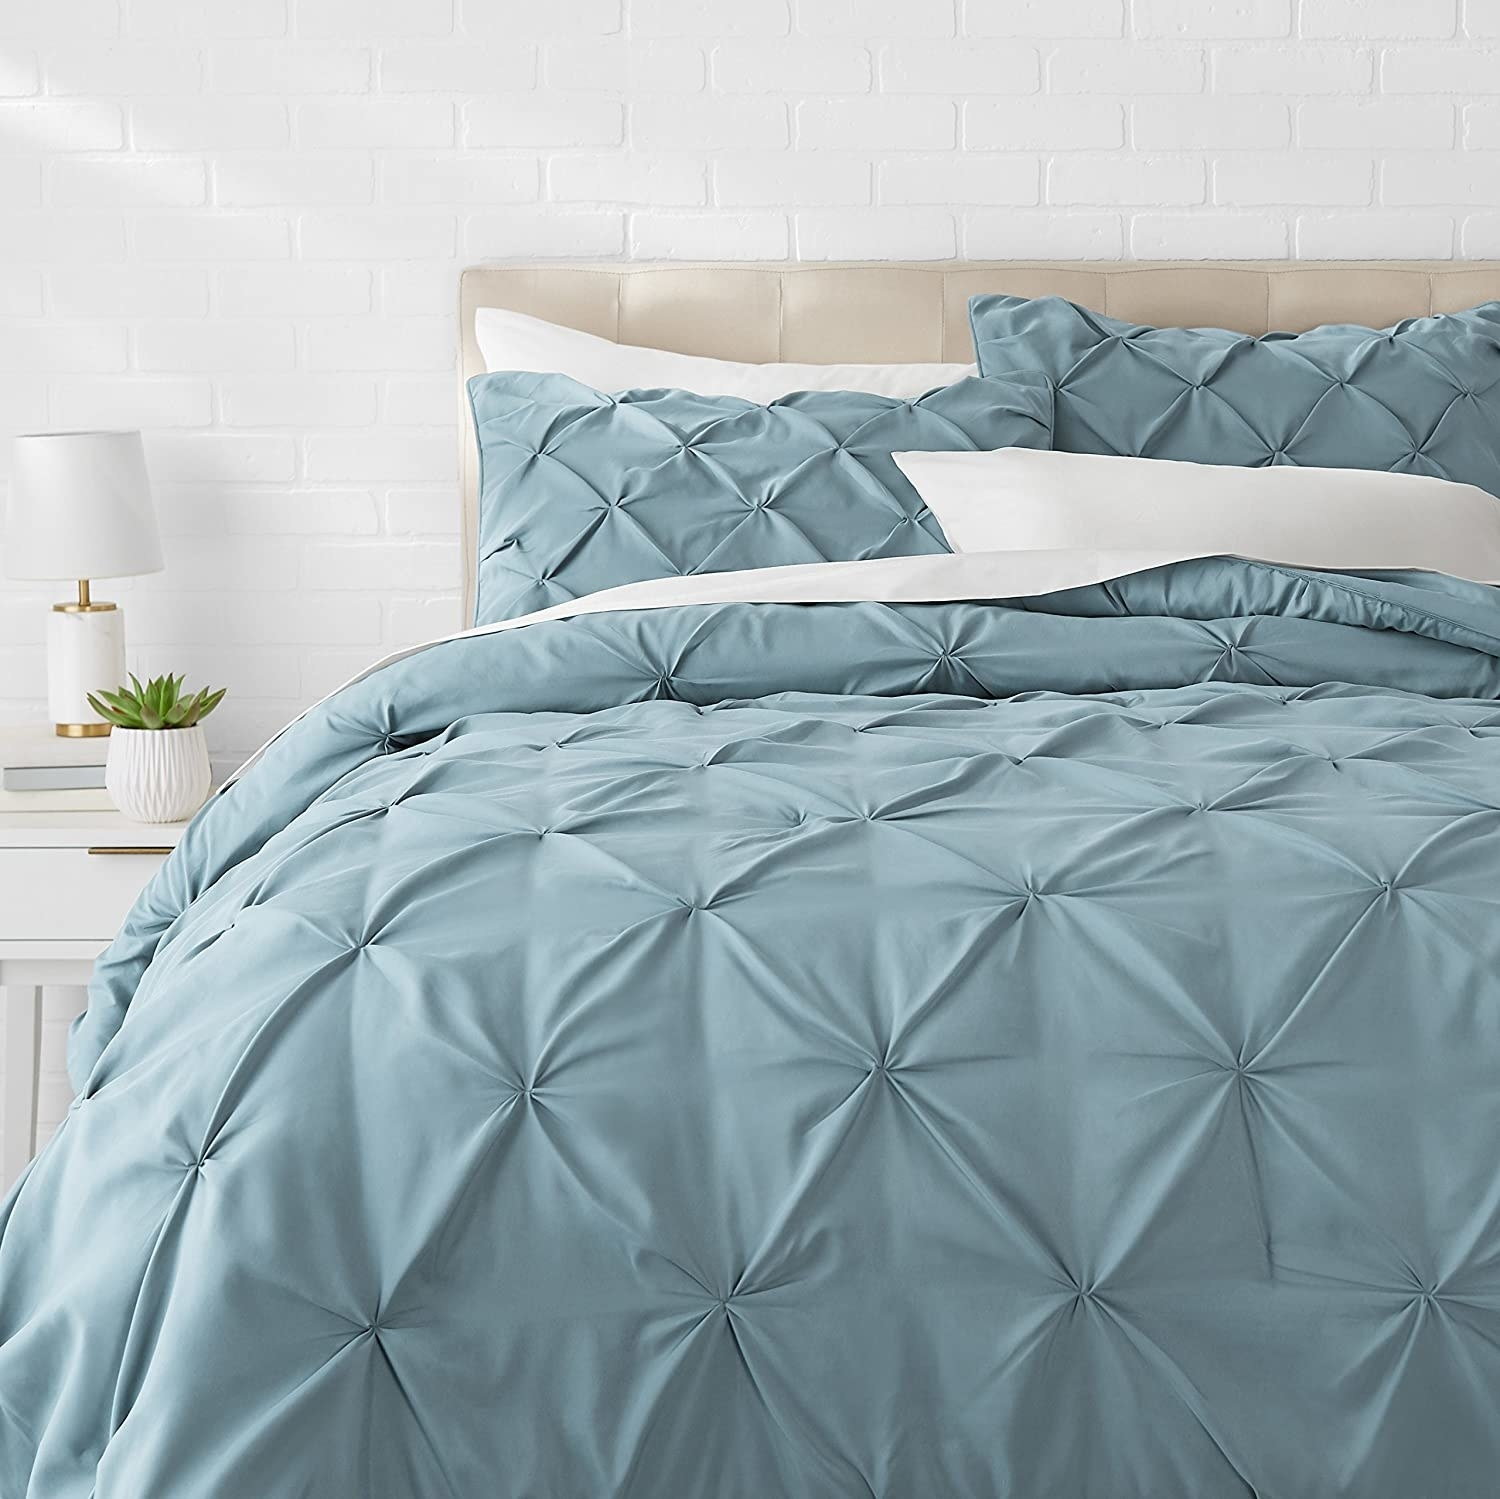 The pinch pleat comforter and shams on a bed in front of a white brick wall